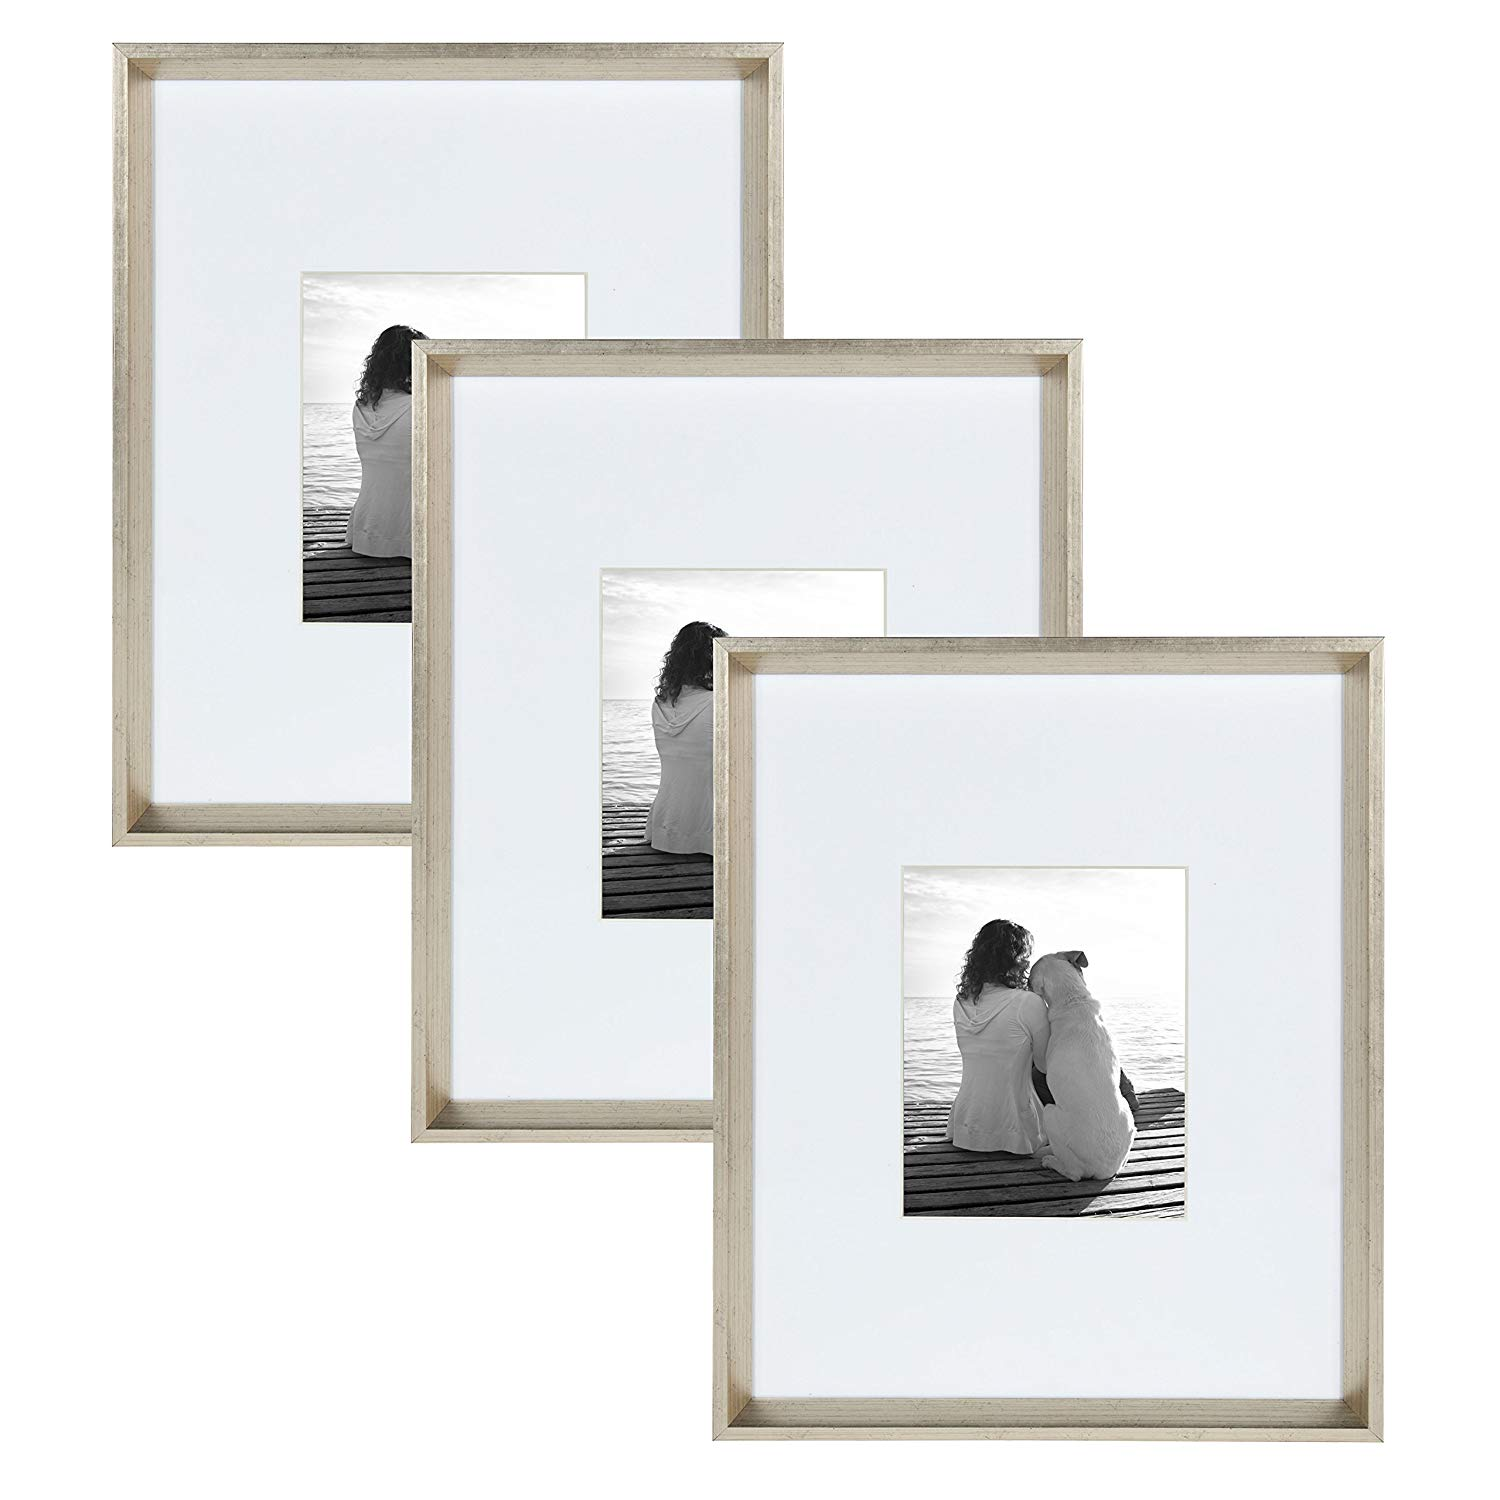 Cheap Matted 16x20 Frame Find Matted 16x20 Frame Deals On Line At